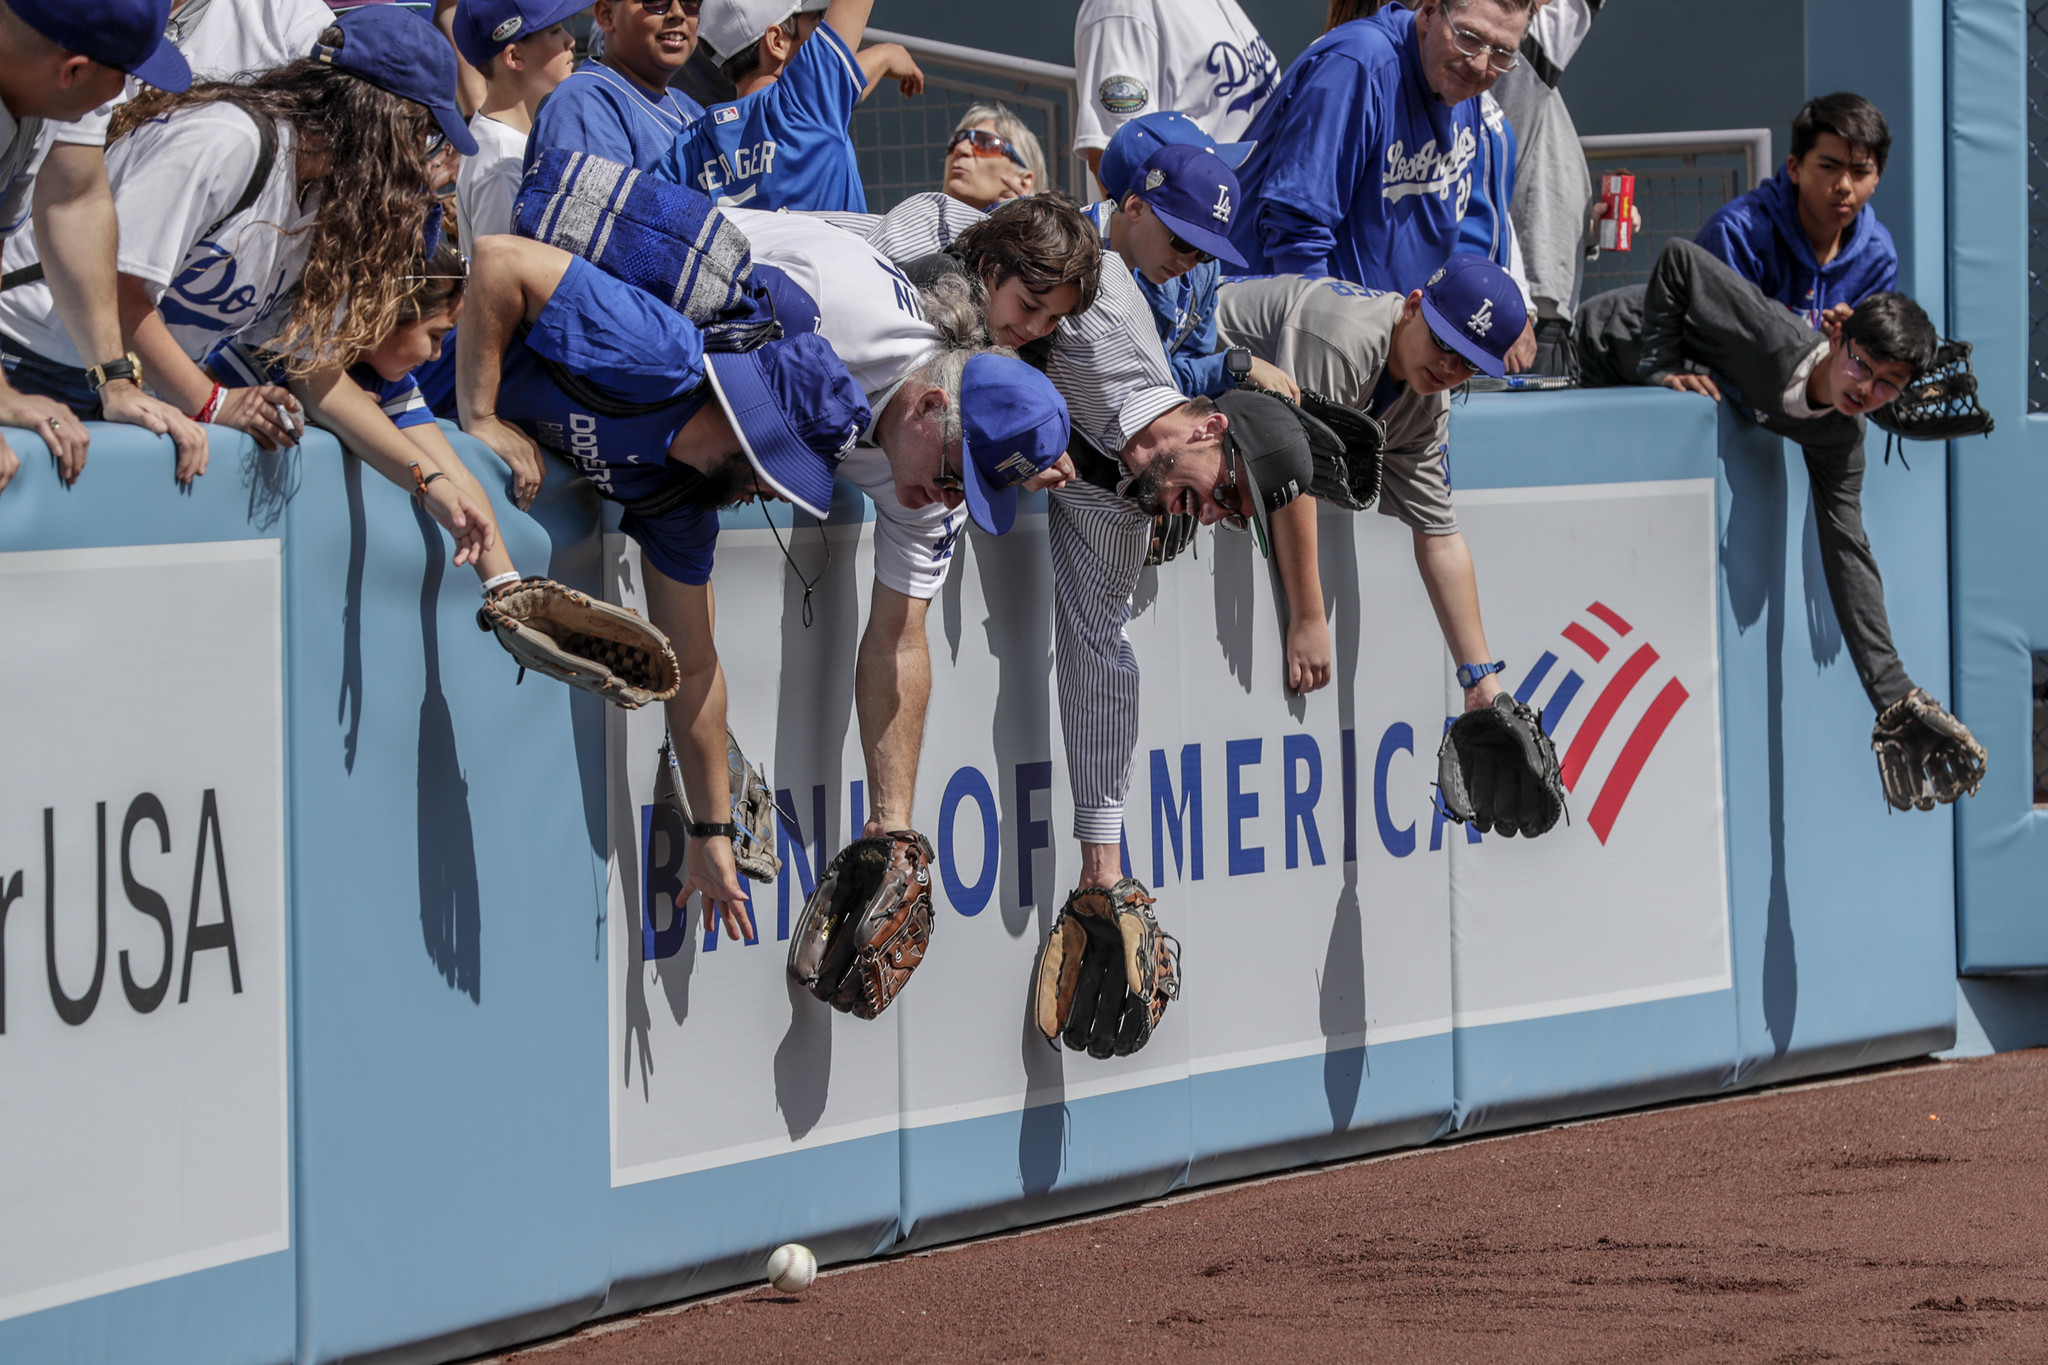 LOS ANGELES, CA, THURSDAY, MARCH 28, 2019 - Fans reach for a batting practice ball during pregame wa